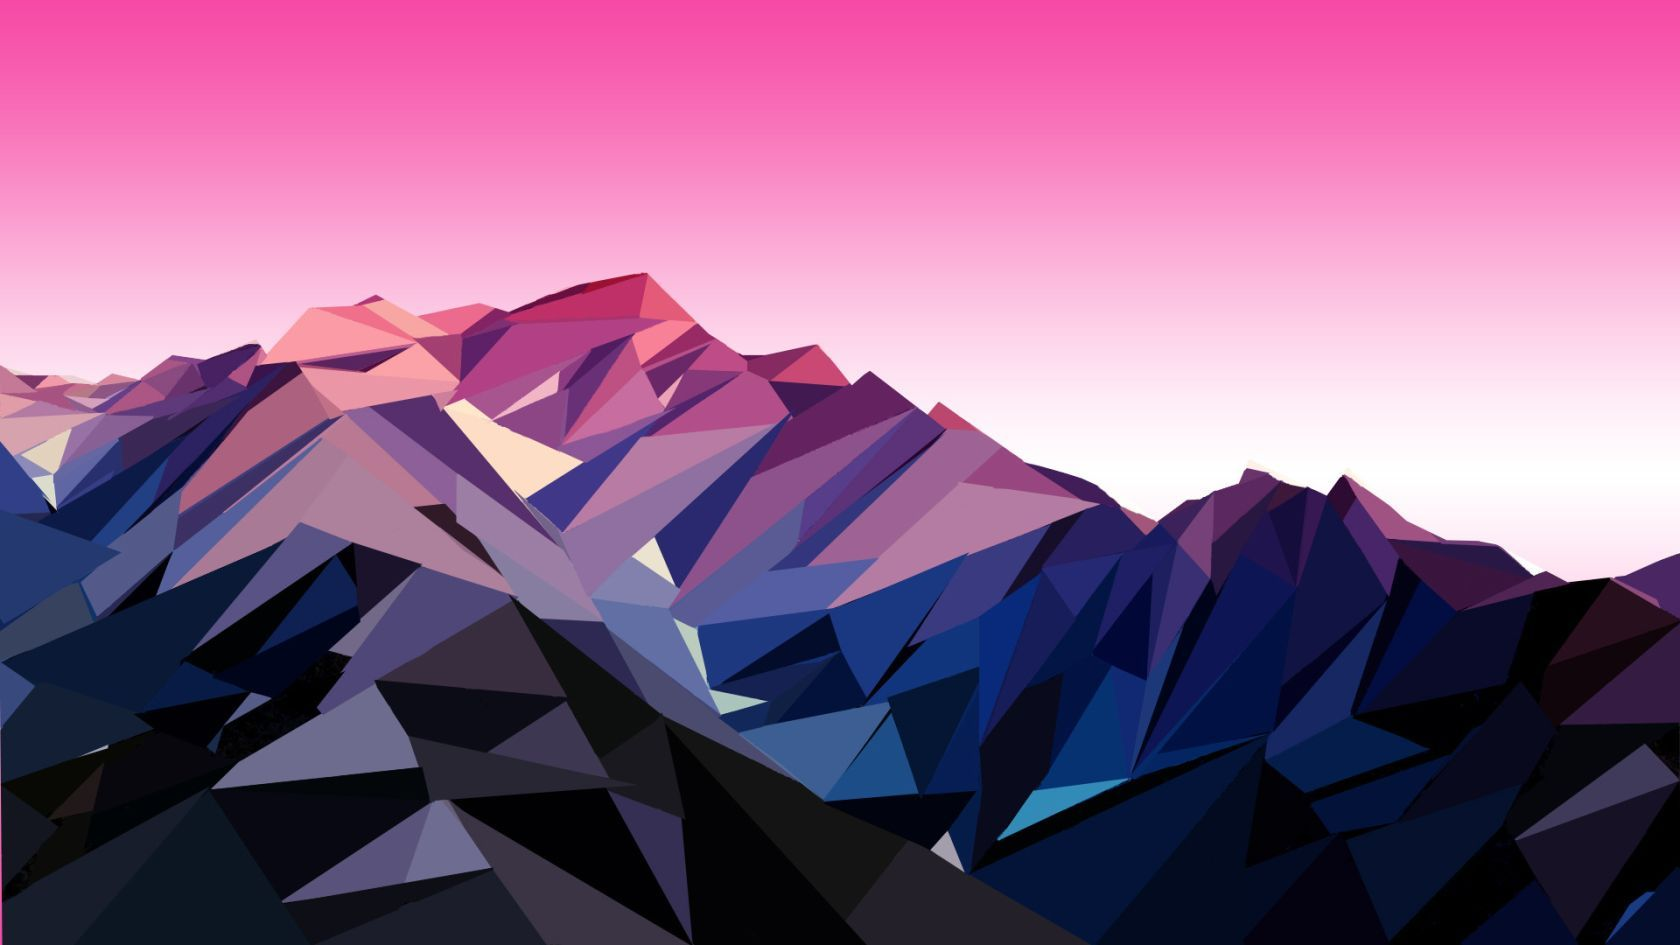 Low Poly Wallpapers In 2020 Polygon Art Art Geometric Art